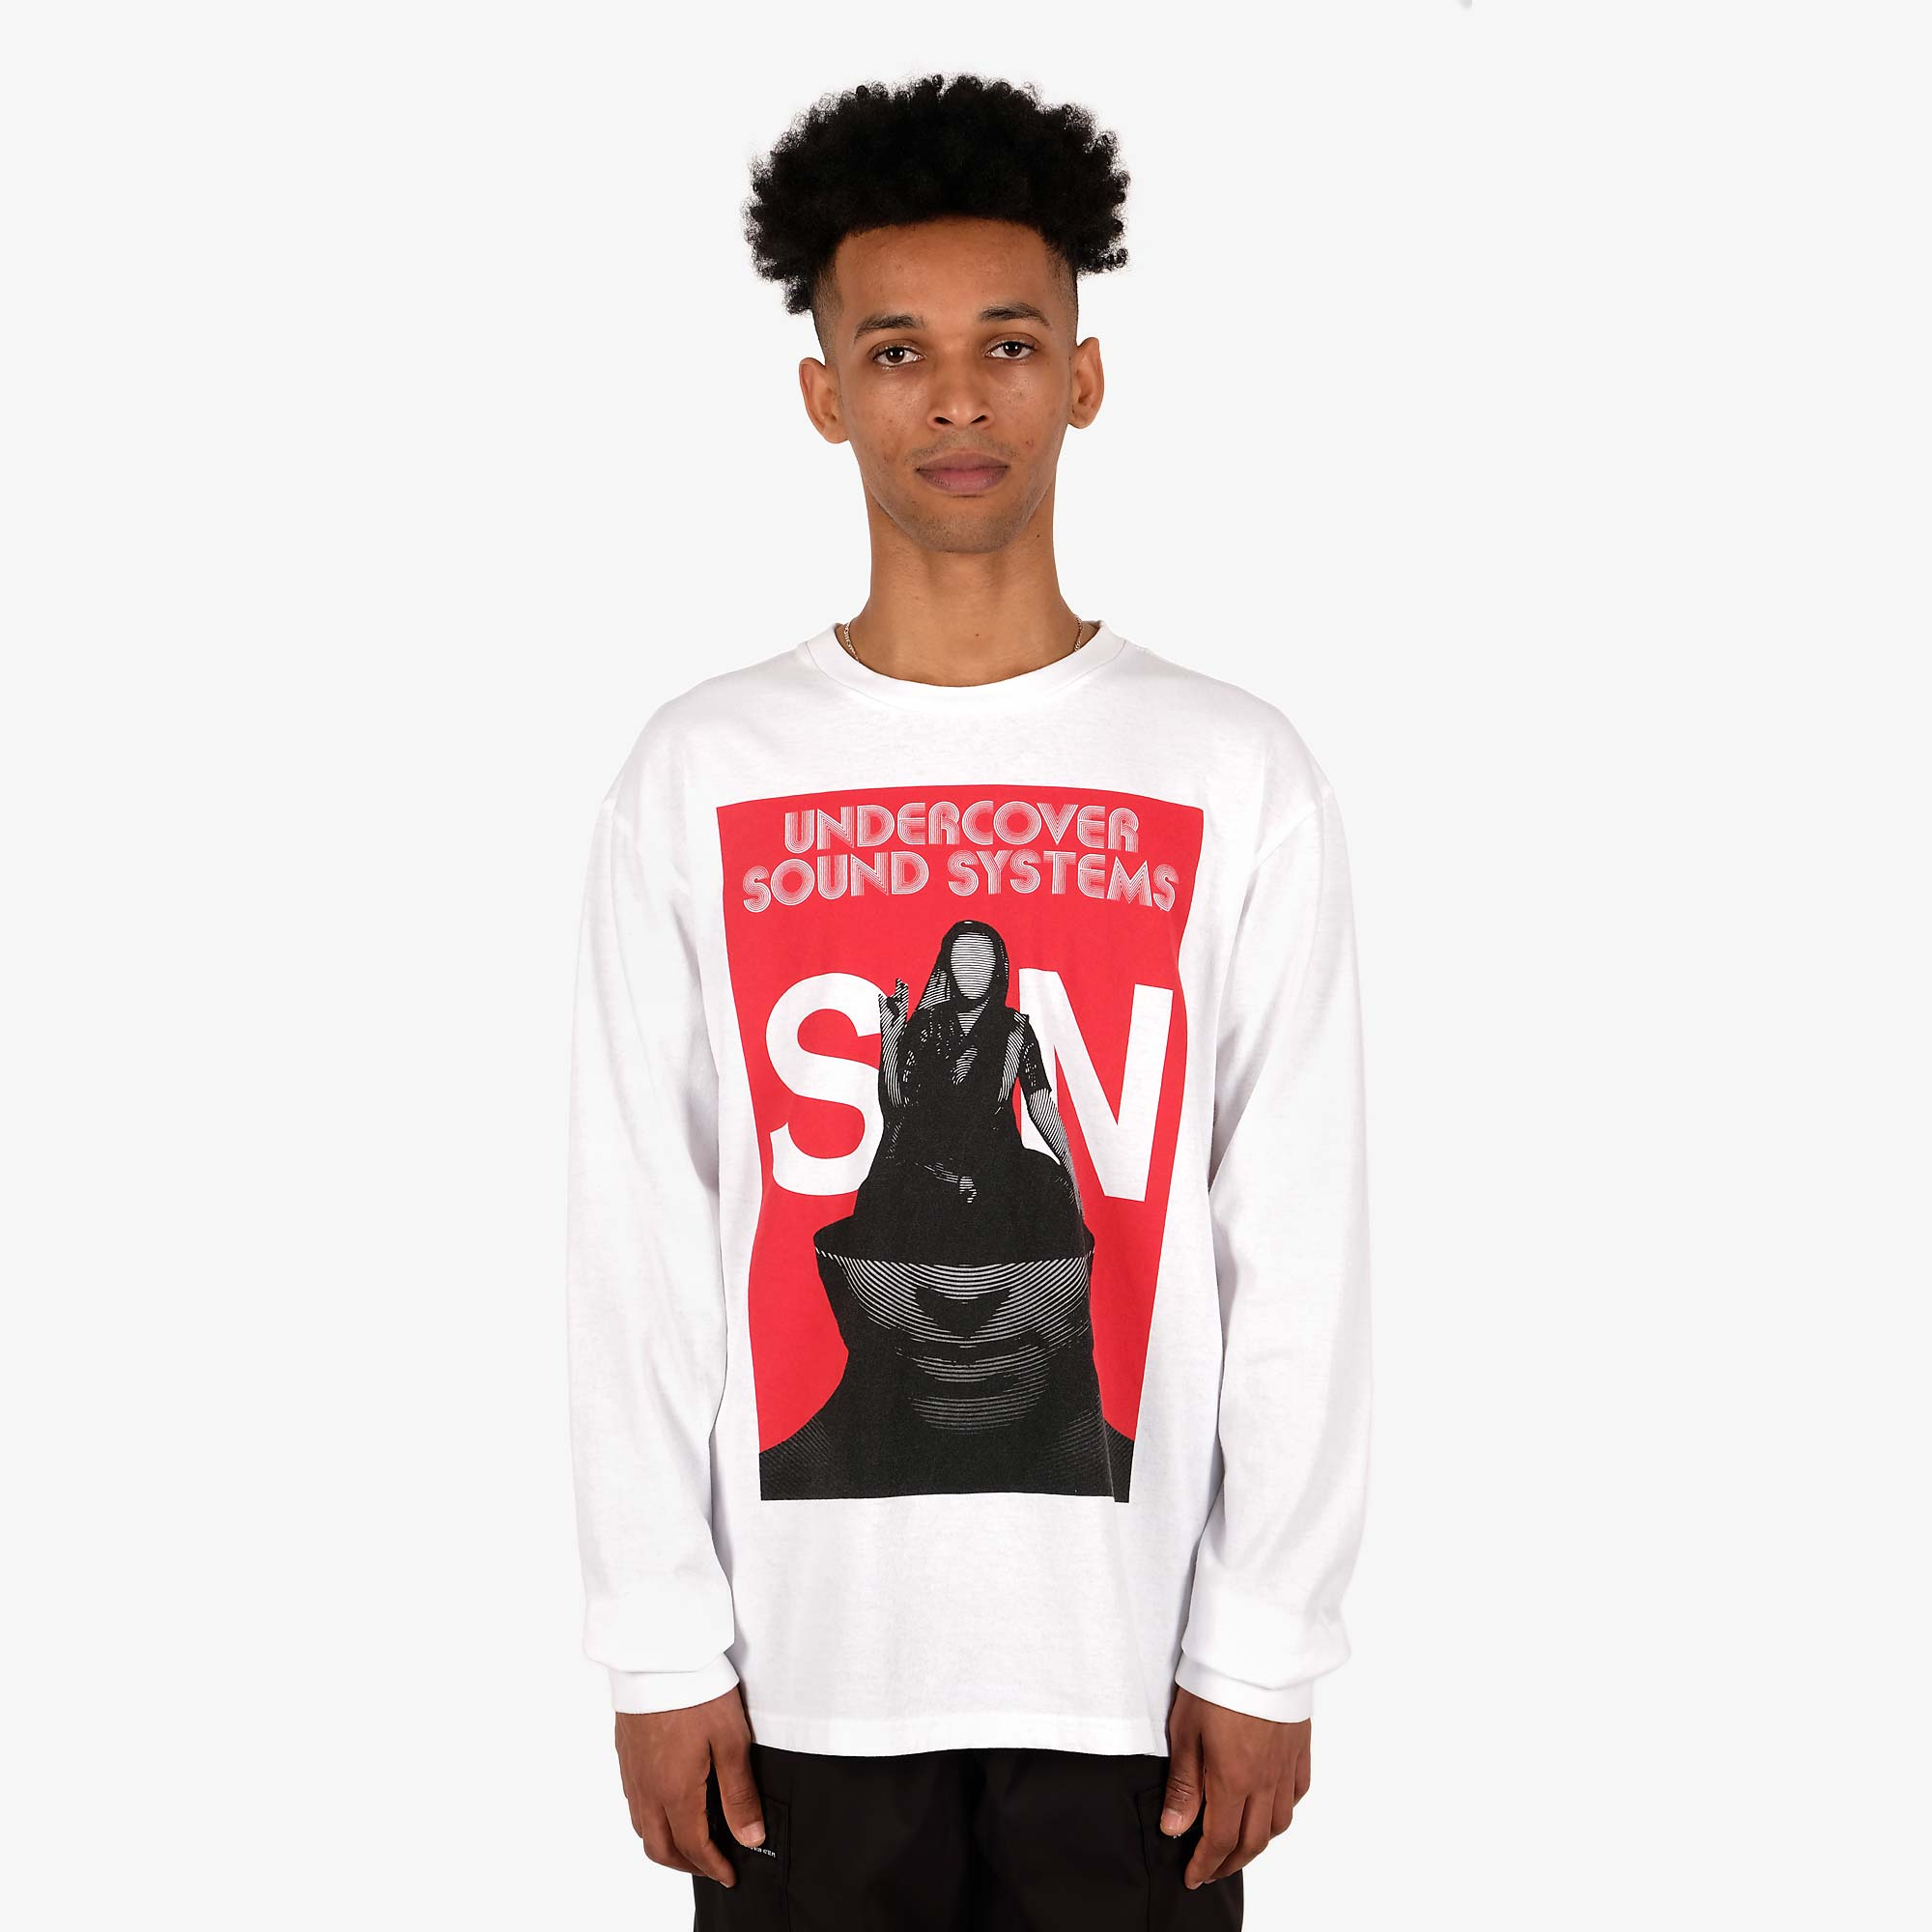 Undercover Sound Systems LS T-Shirt UCY3892-4 - White 2